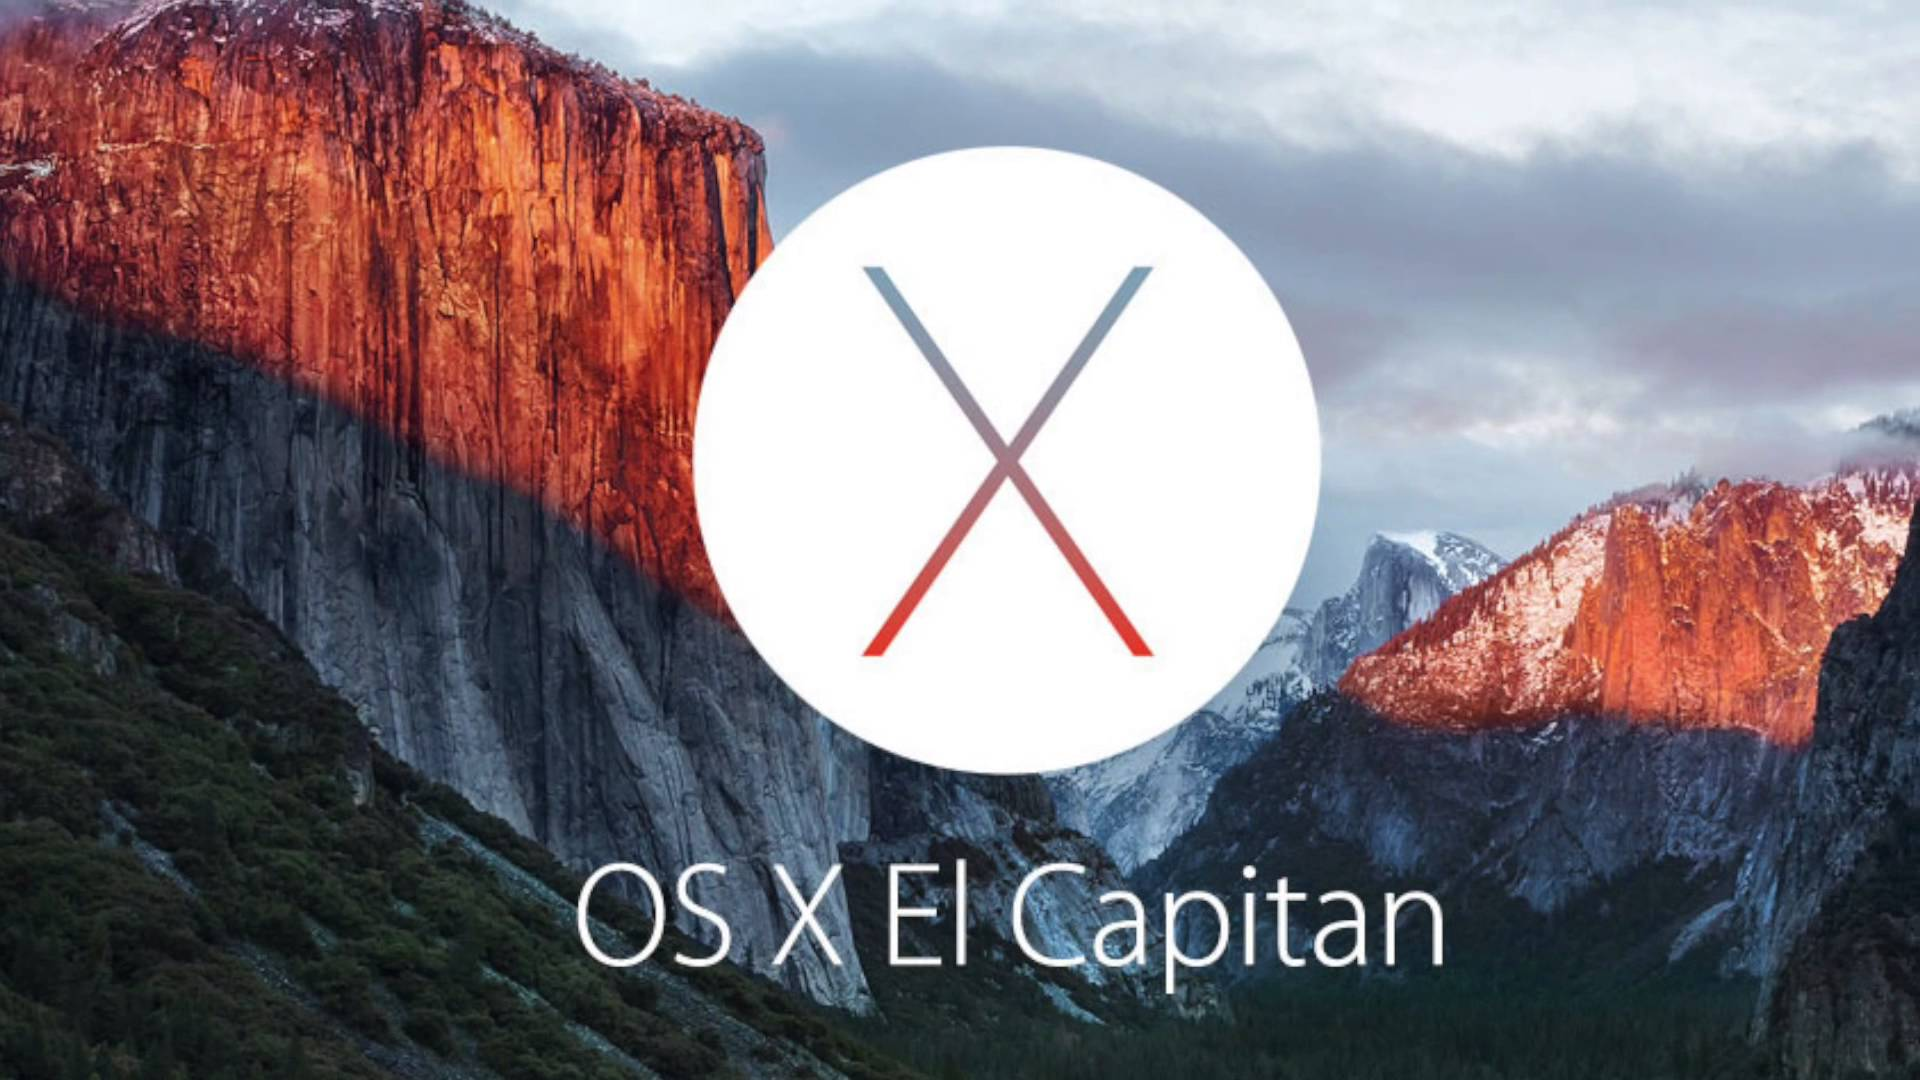 El Capitan Tricks Mac Users Should Be Aware Of